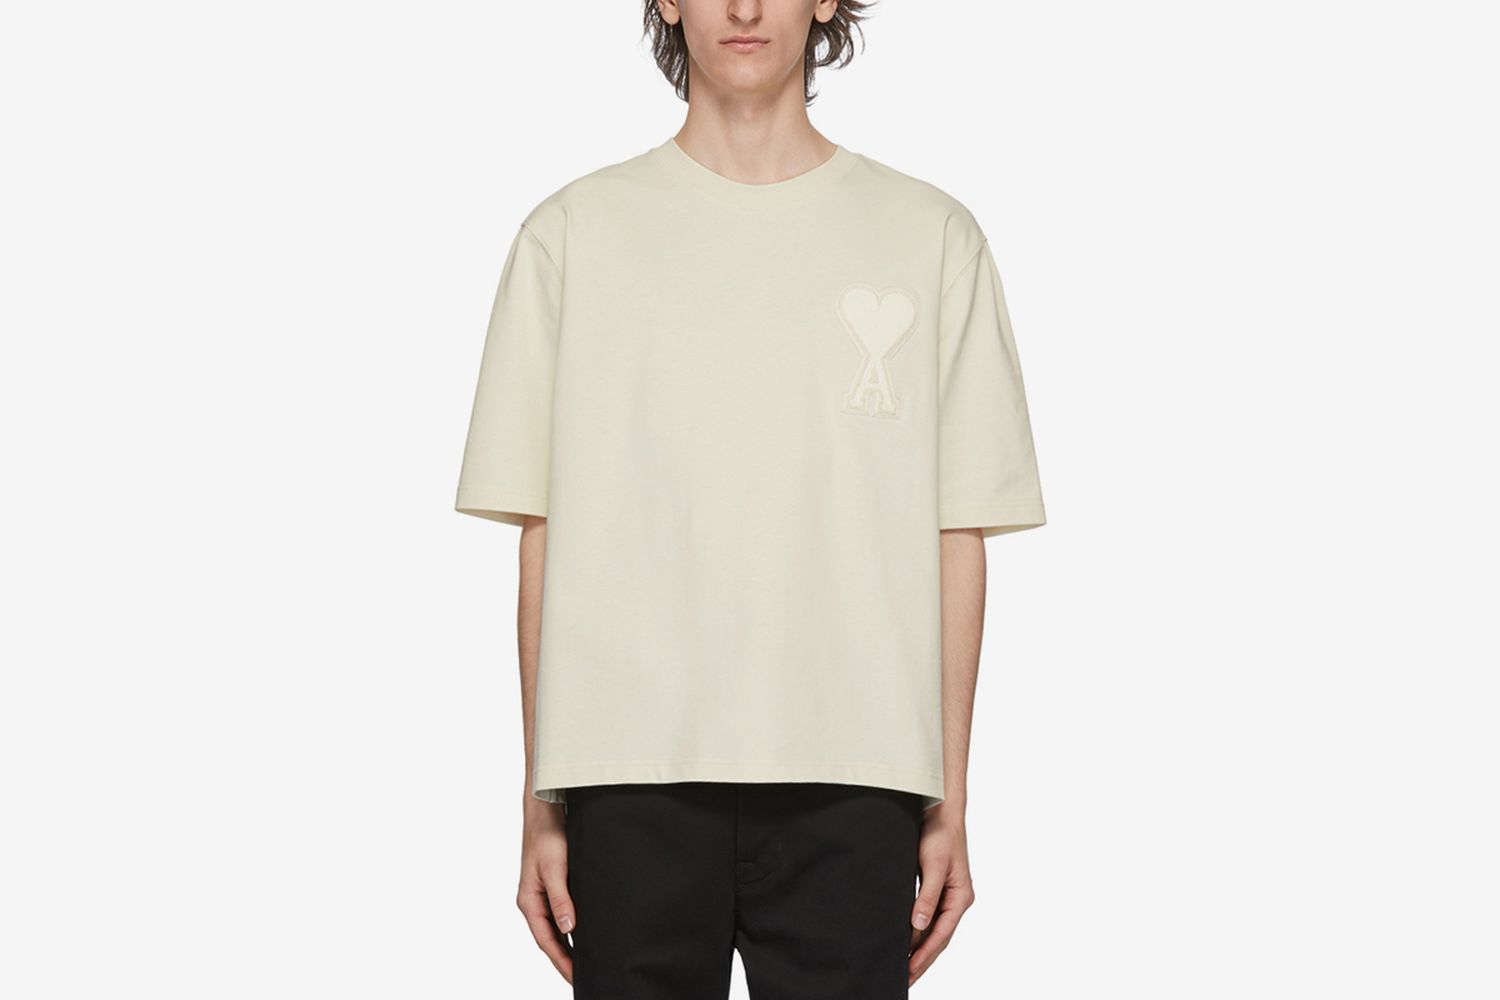 SSENSE Exclusive Ami De Coeur T-Shirt